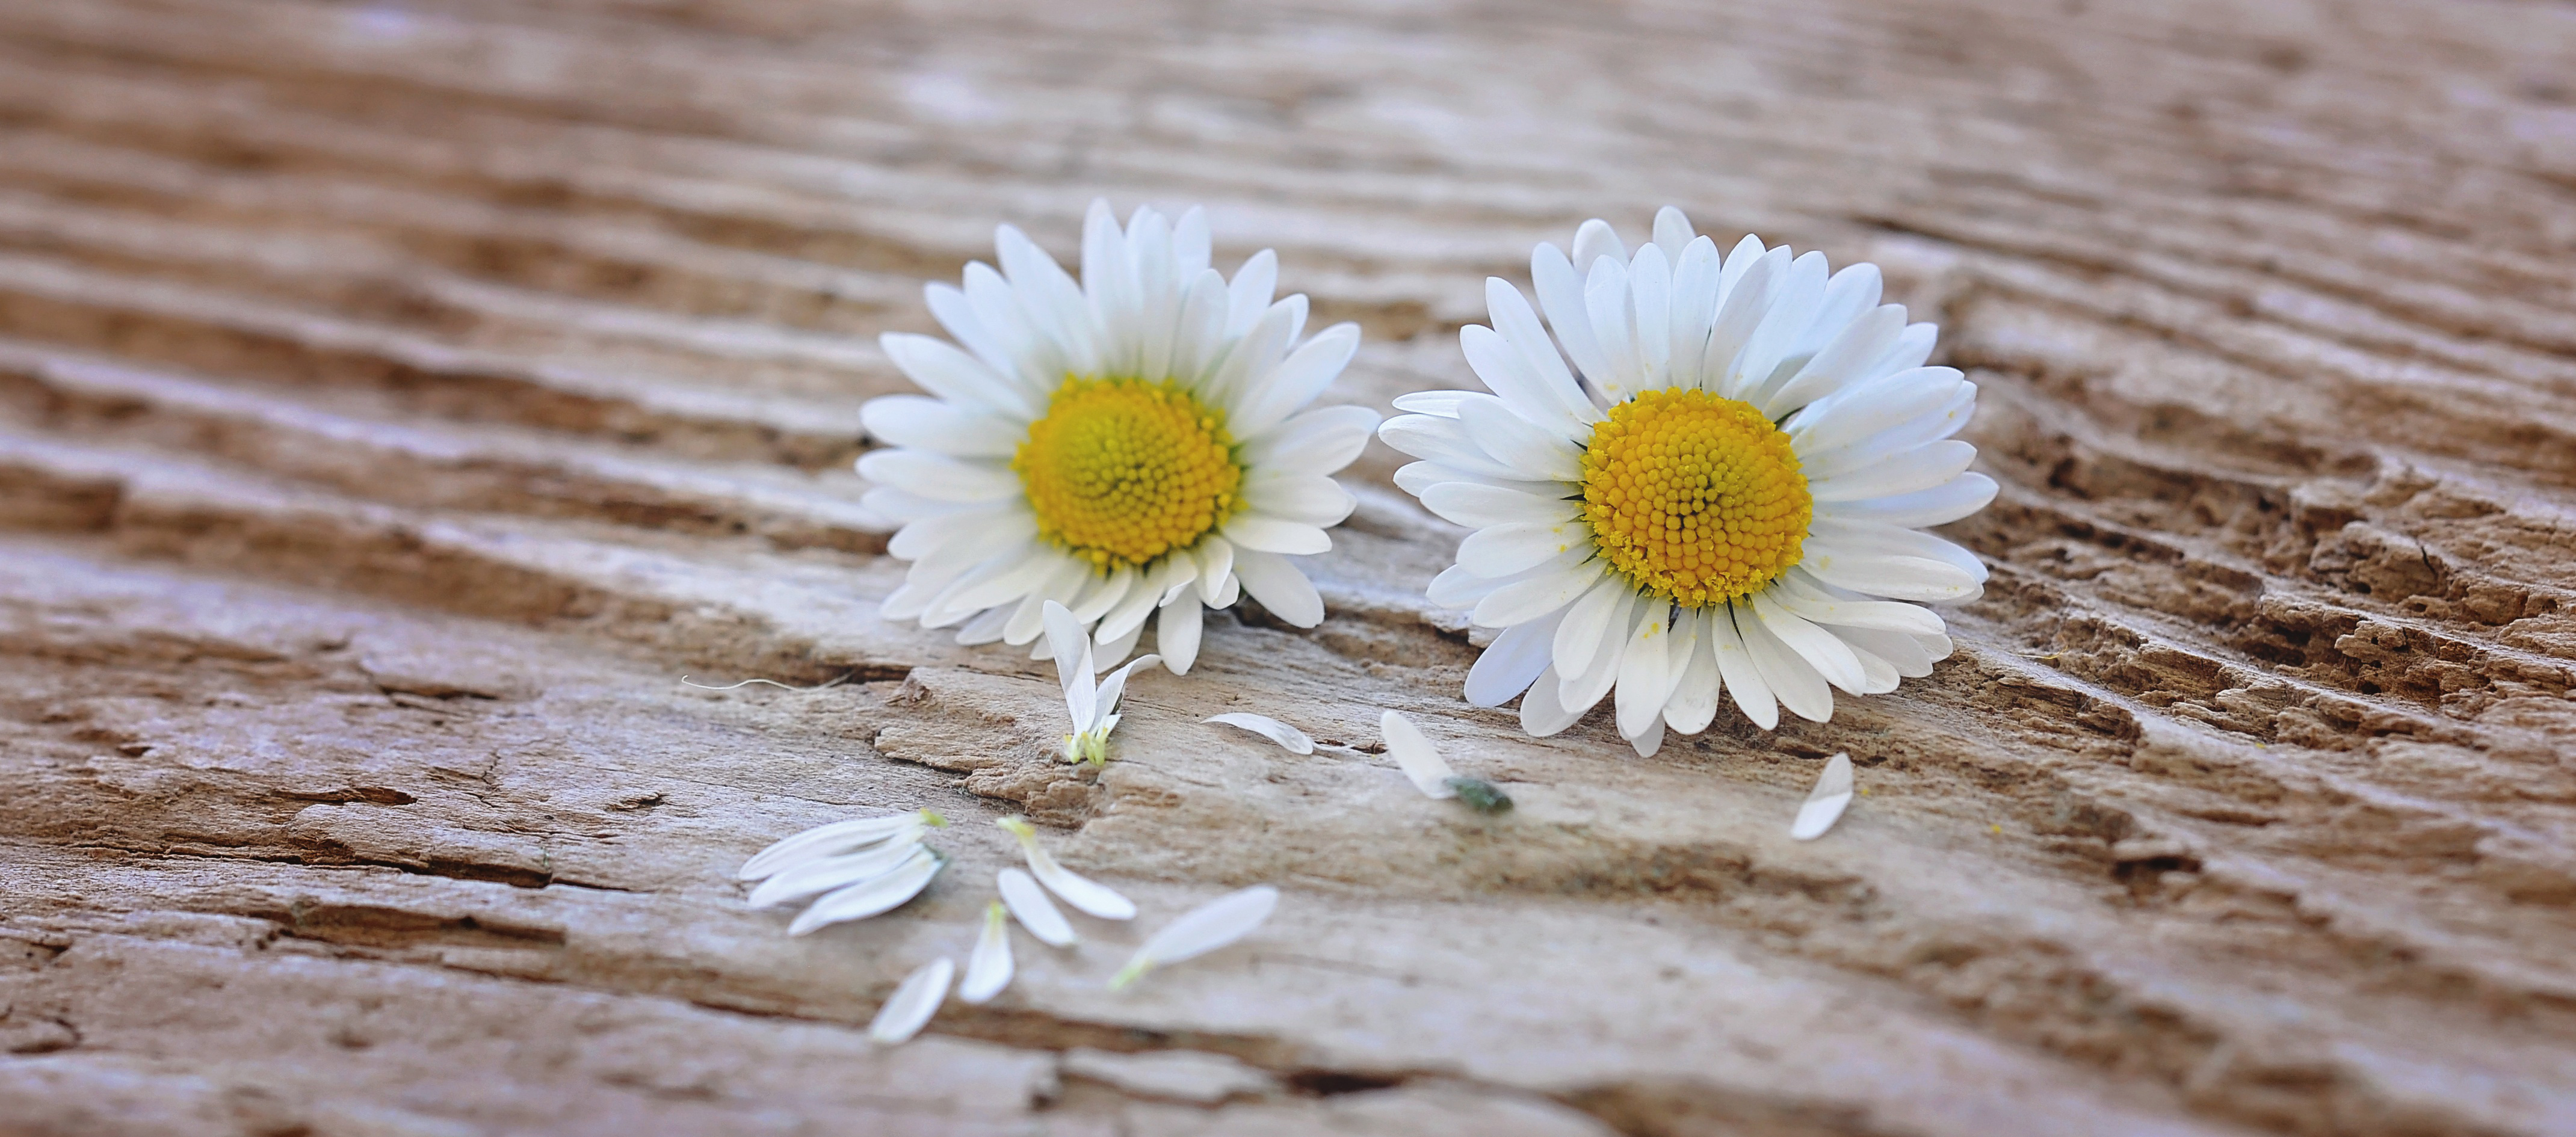 Flower,daisy,wood,close